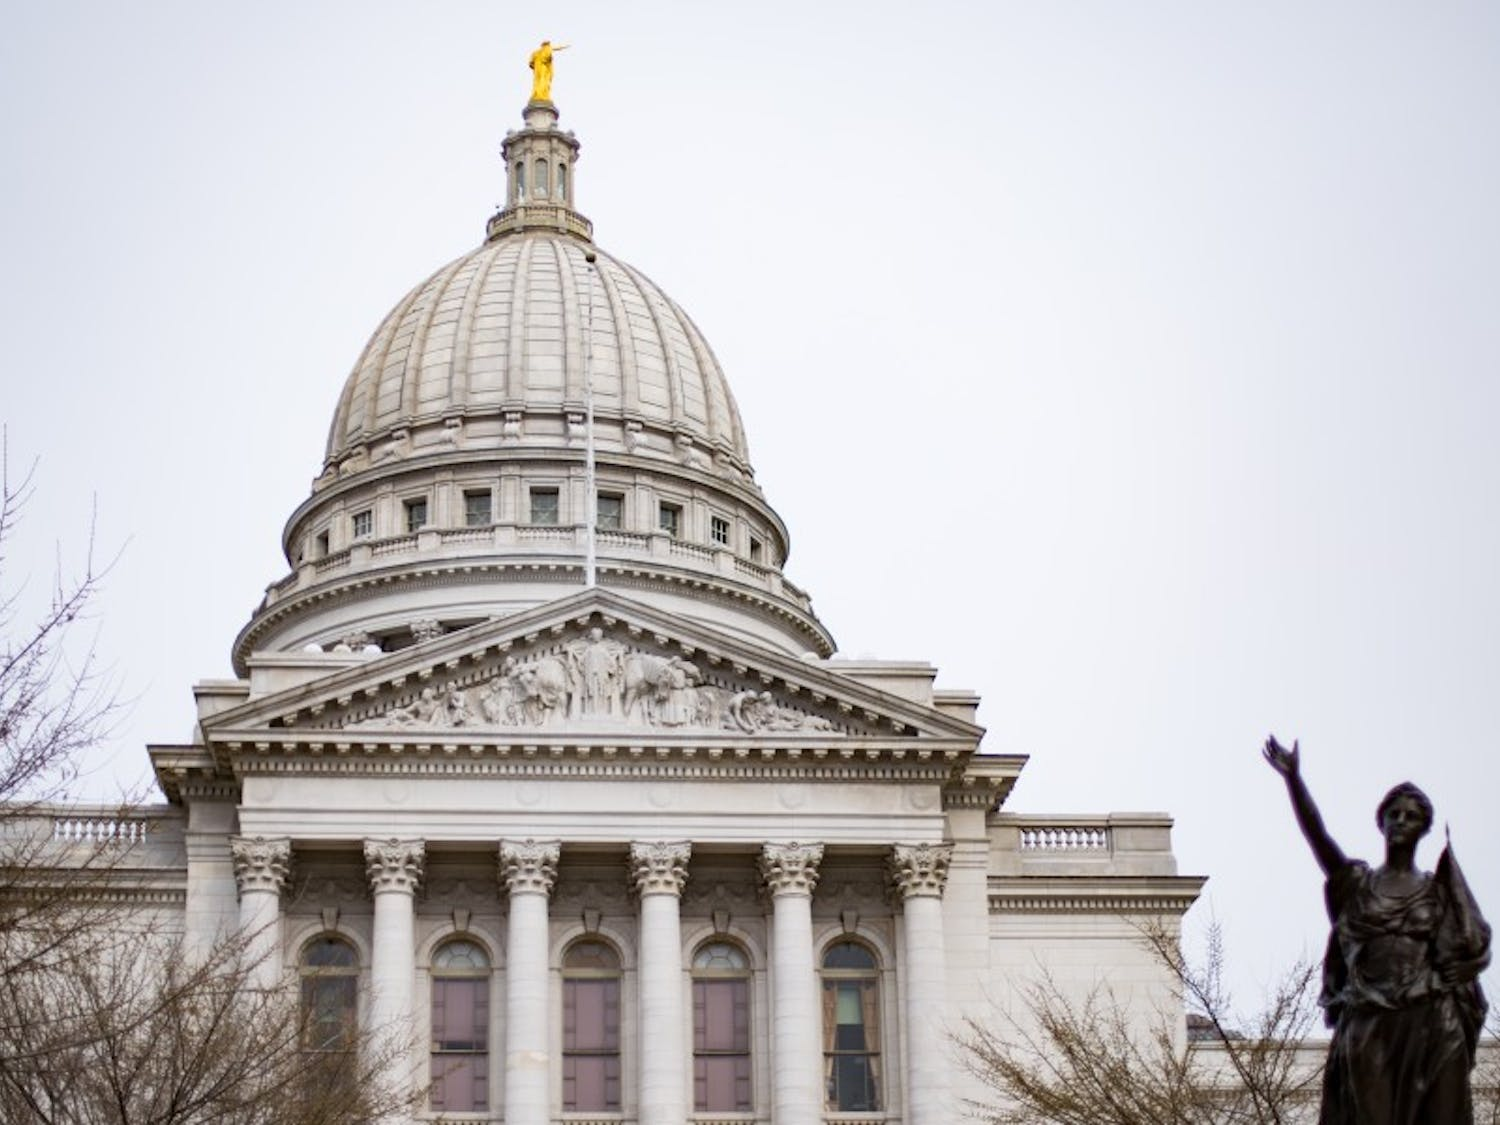 Gov. Scott Walker used his veto power to reject certain aspects of the state's two-year budget, some of which will affect the UW System.